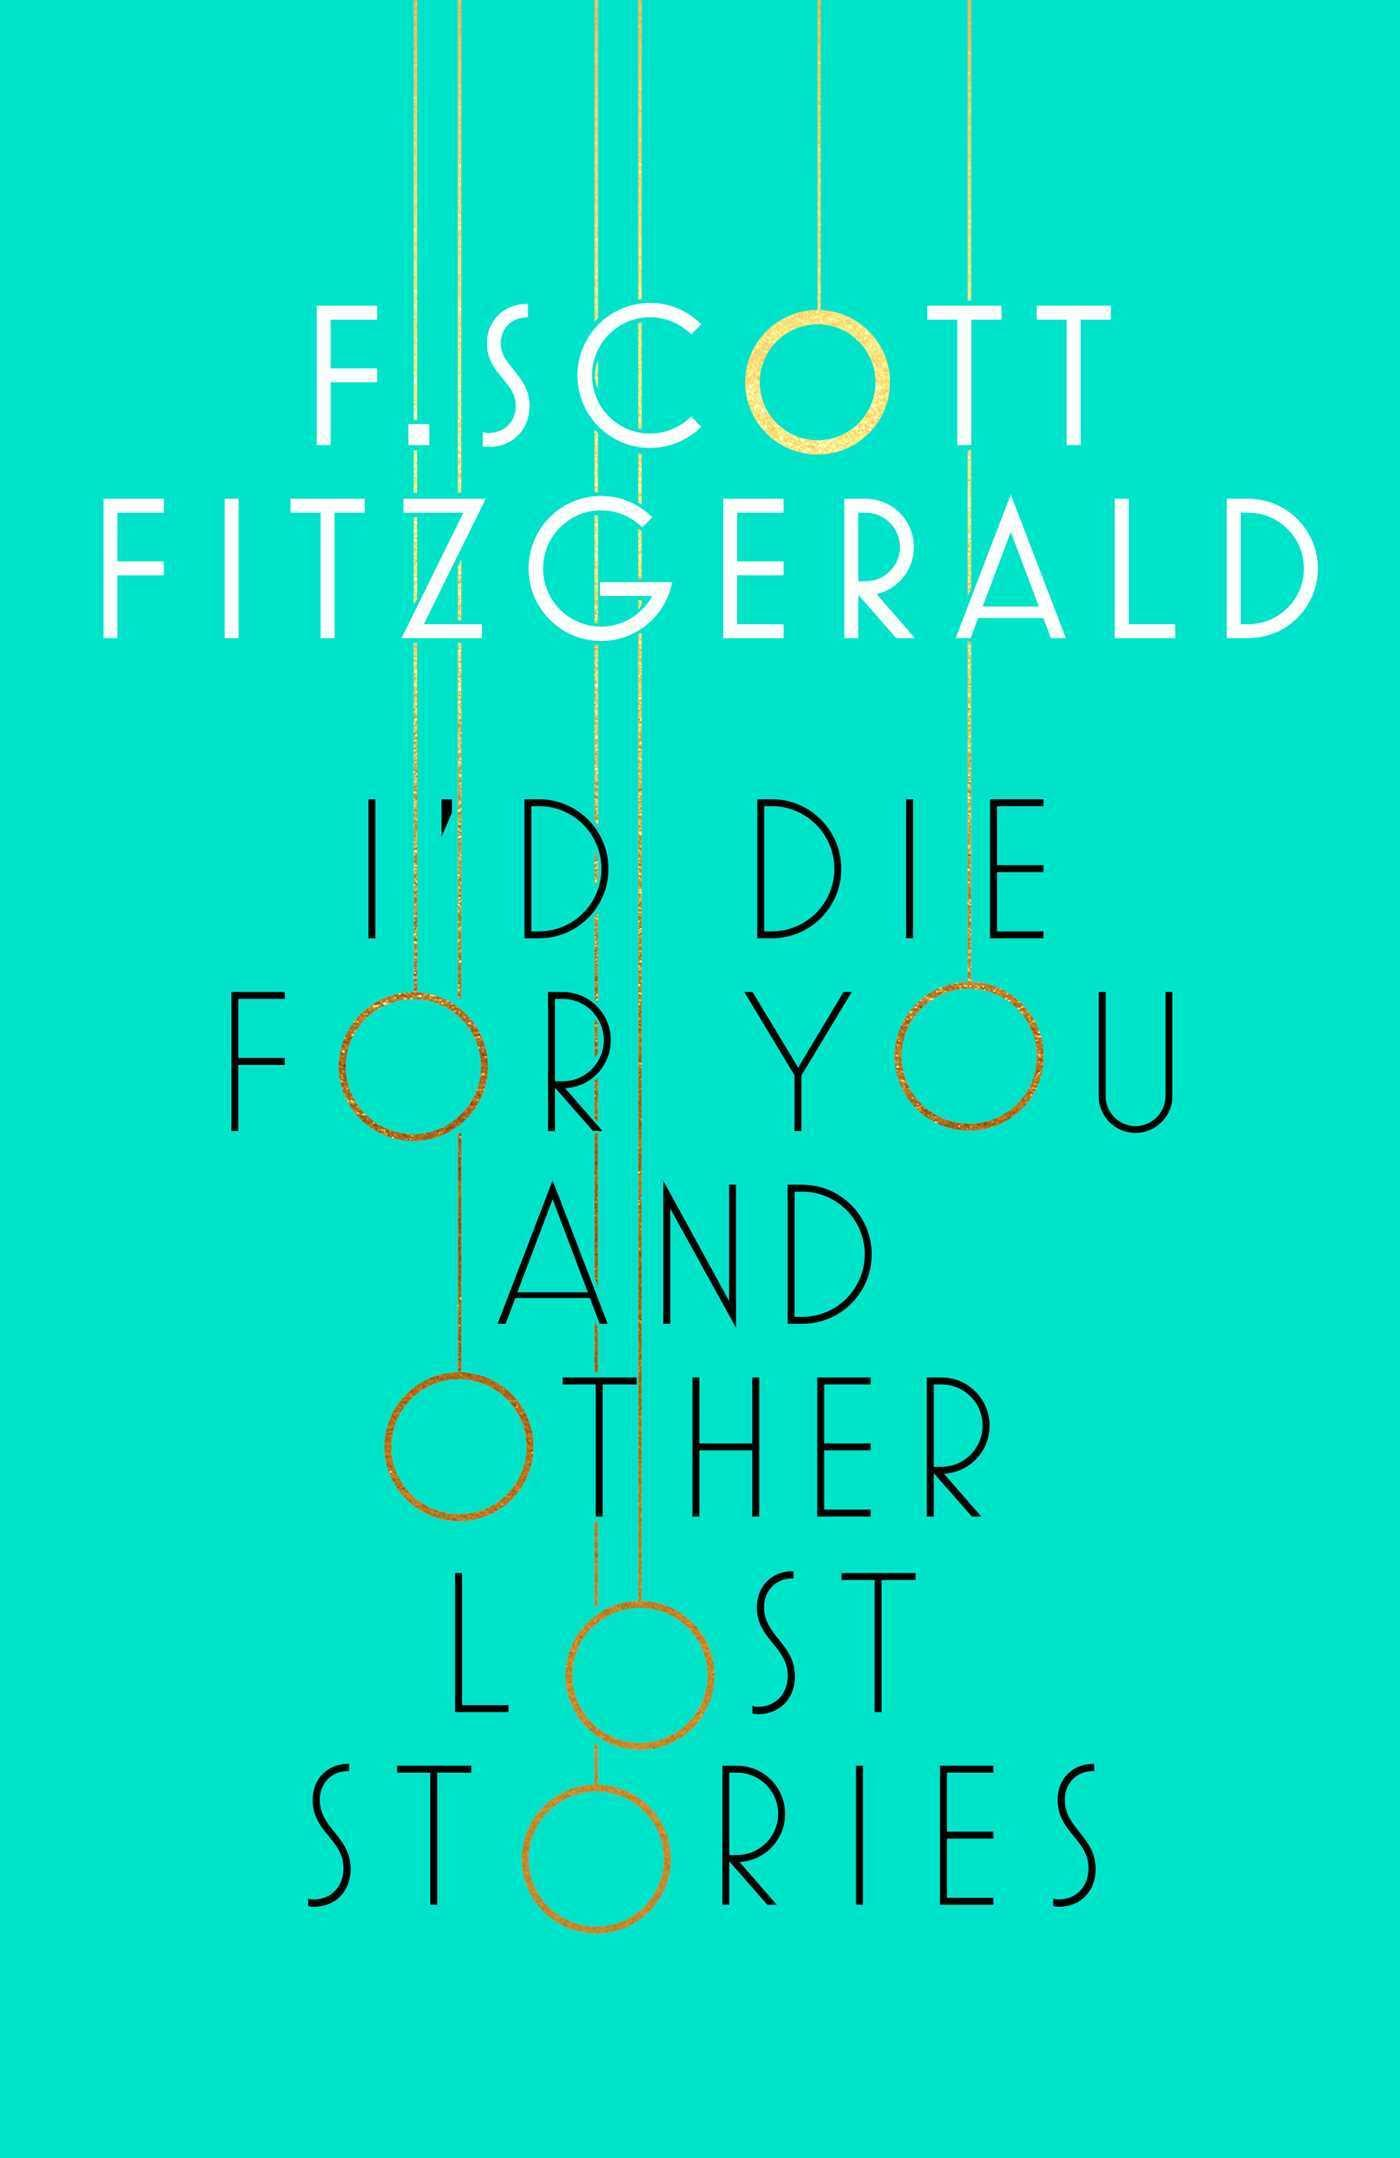 I'd Die for You: And OtherLostStories